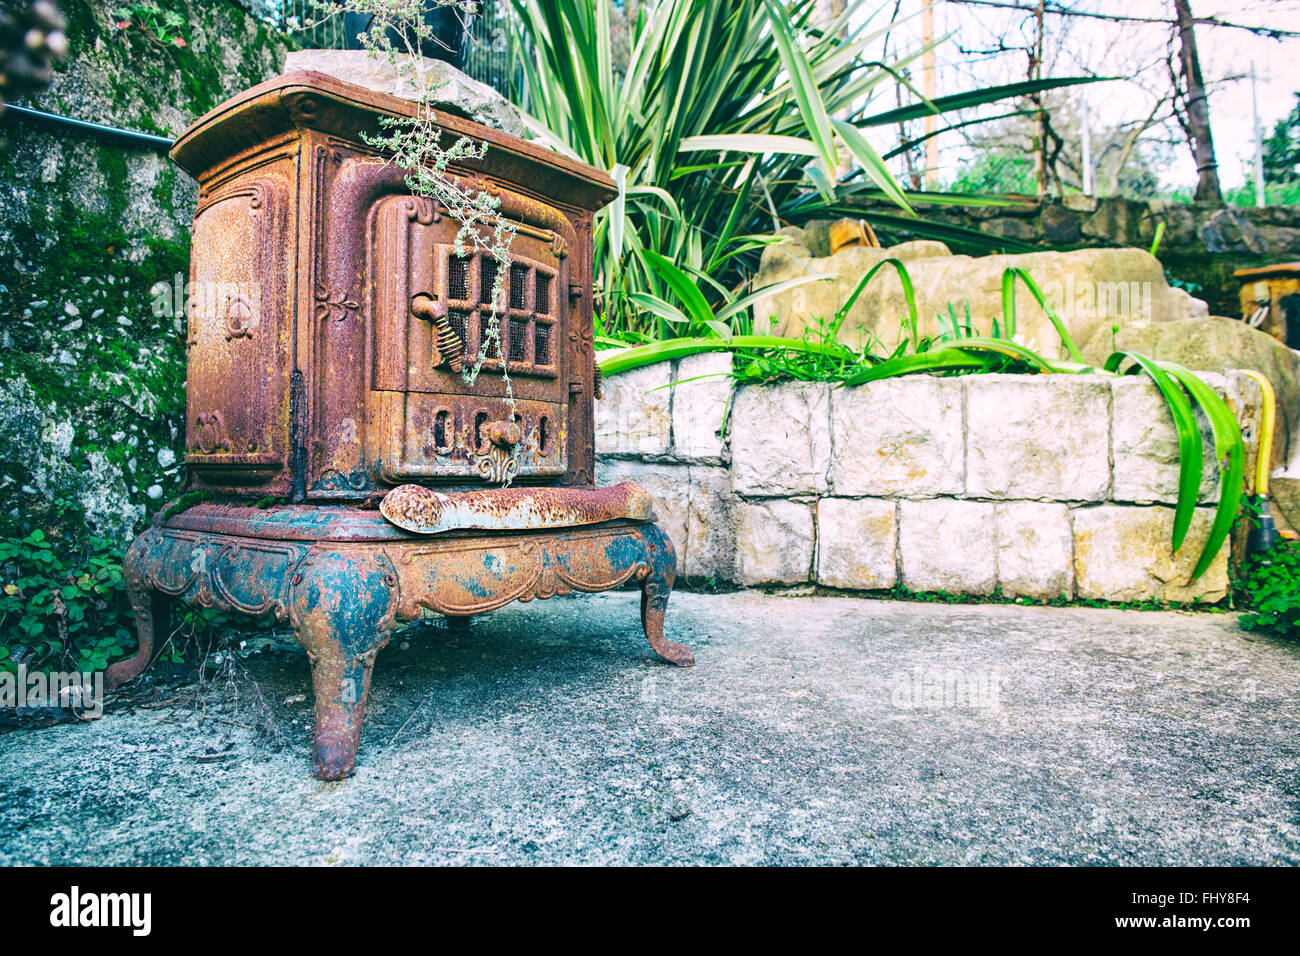 old fireplace in the garden whit flowers - Stock Image